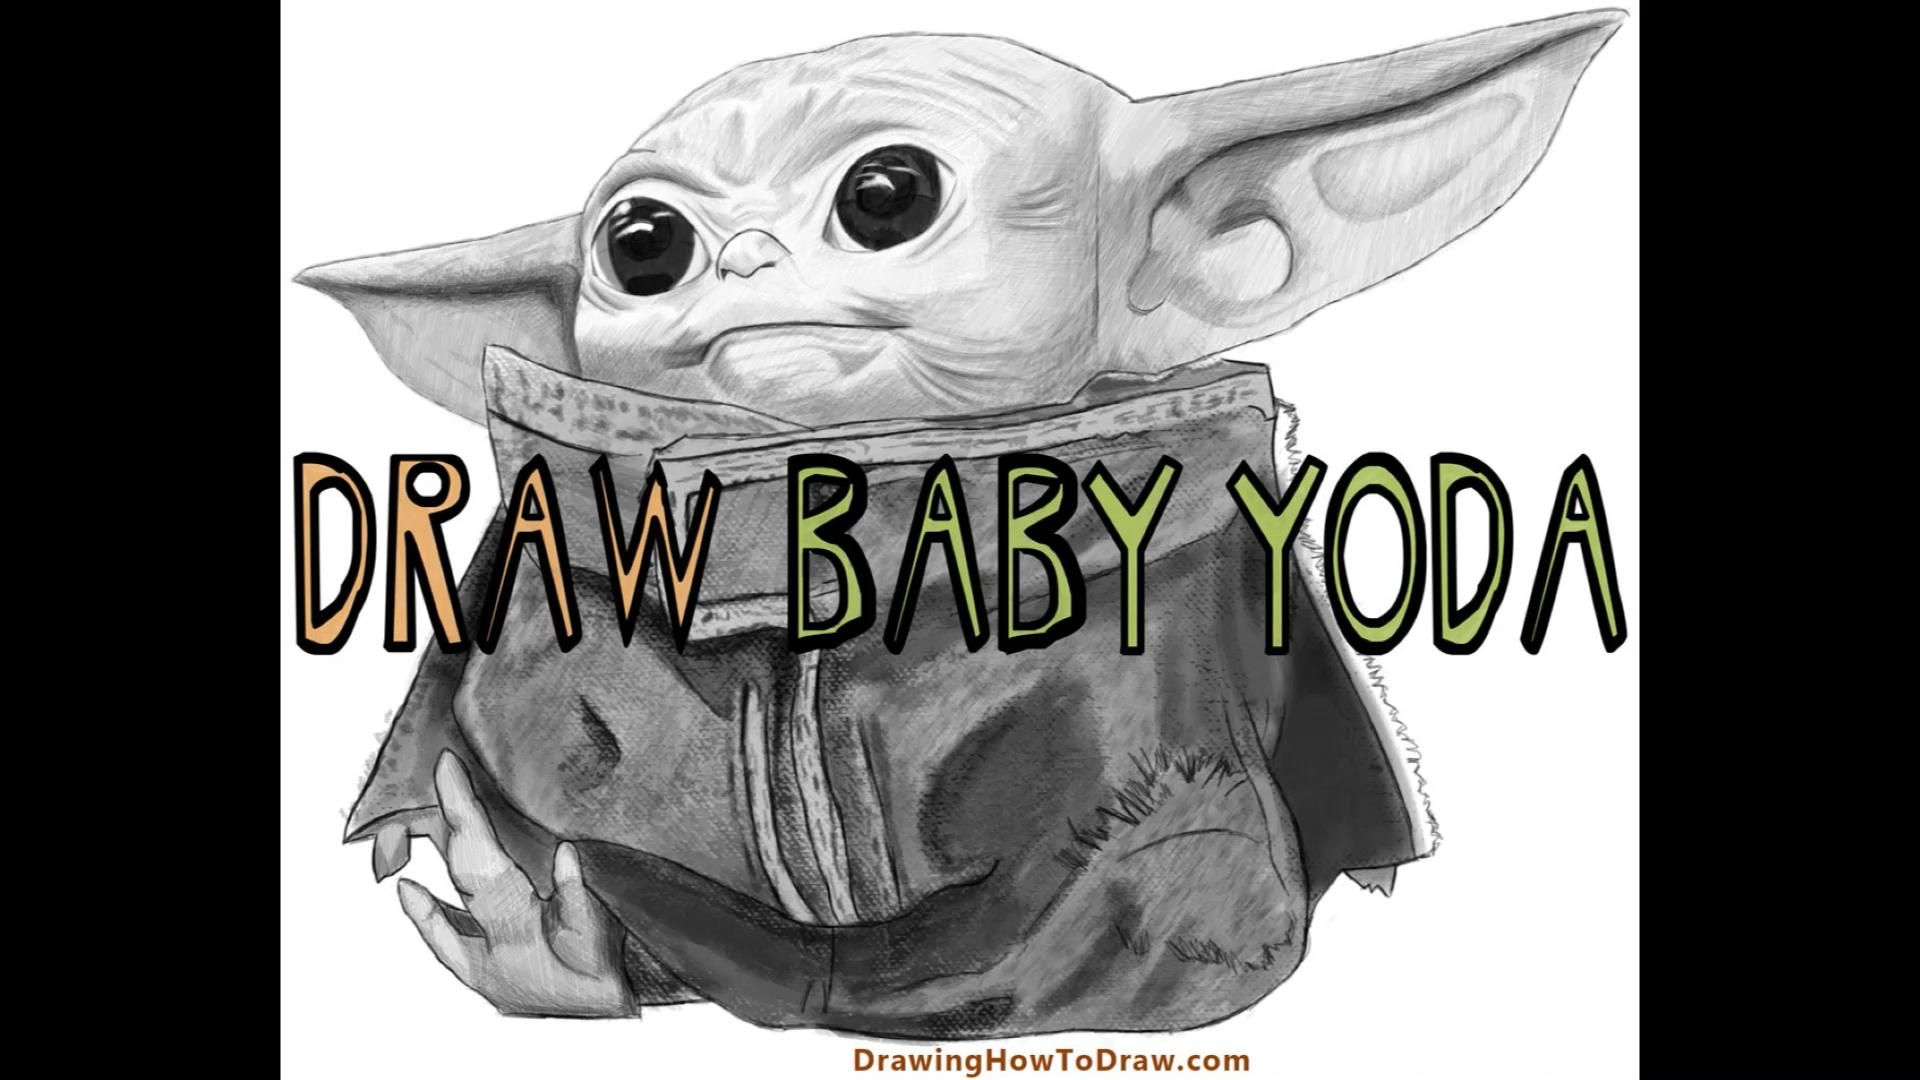 How To Draw Baby Yoda From The Mandalorian Realistic Easy Step By Step Drawing Tutorial How To Draw Step By Step Drawing Tutorials Video Video Star Wars Art Drawings